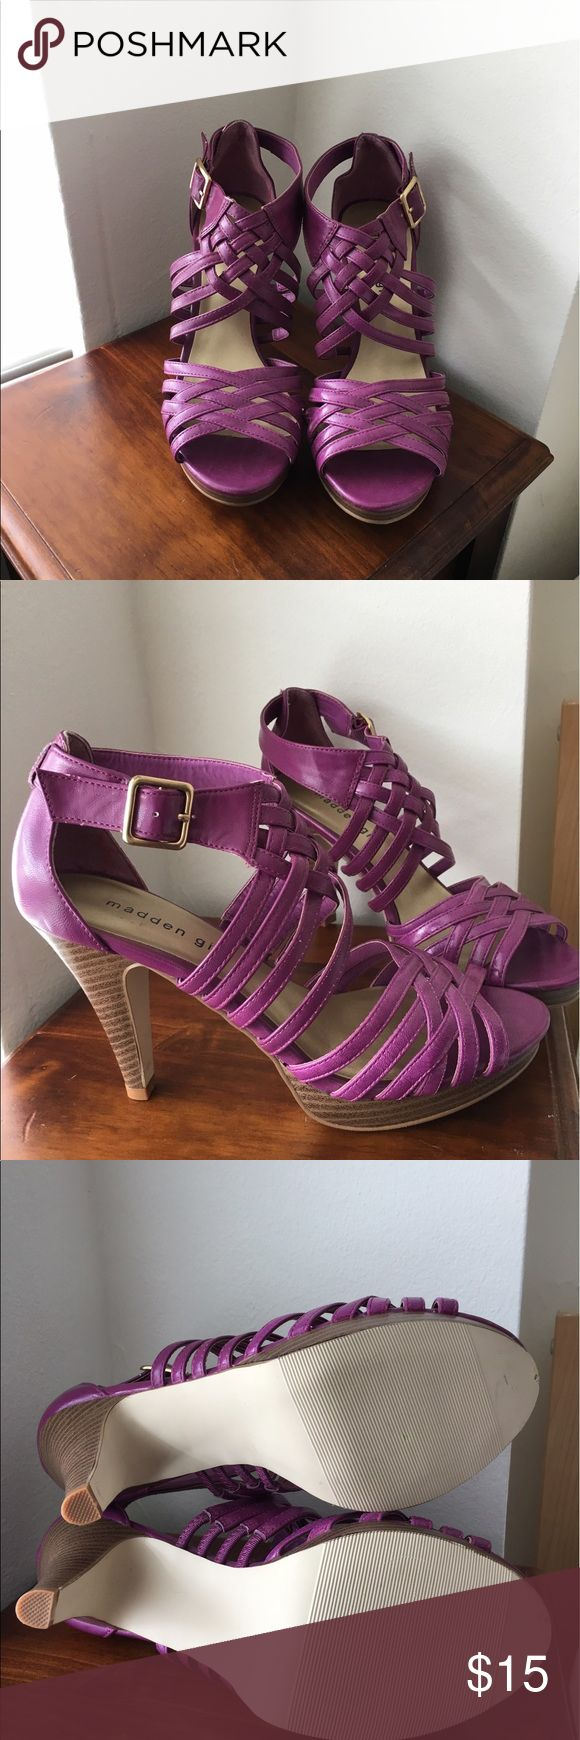 Lavender sandals shoes - Purple Fuschia Madden Girl Sandals Heel Is 3 75 And They Are Actually Really Comfortable